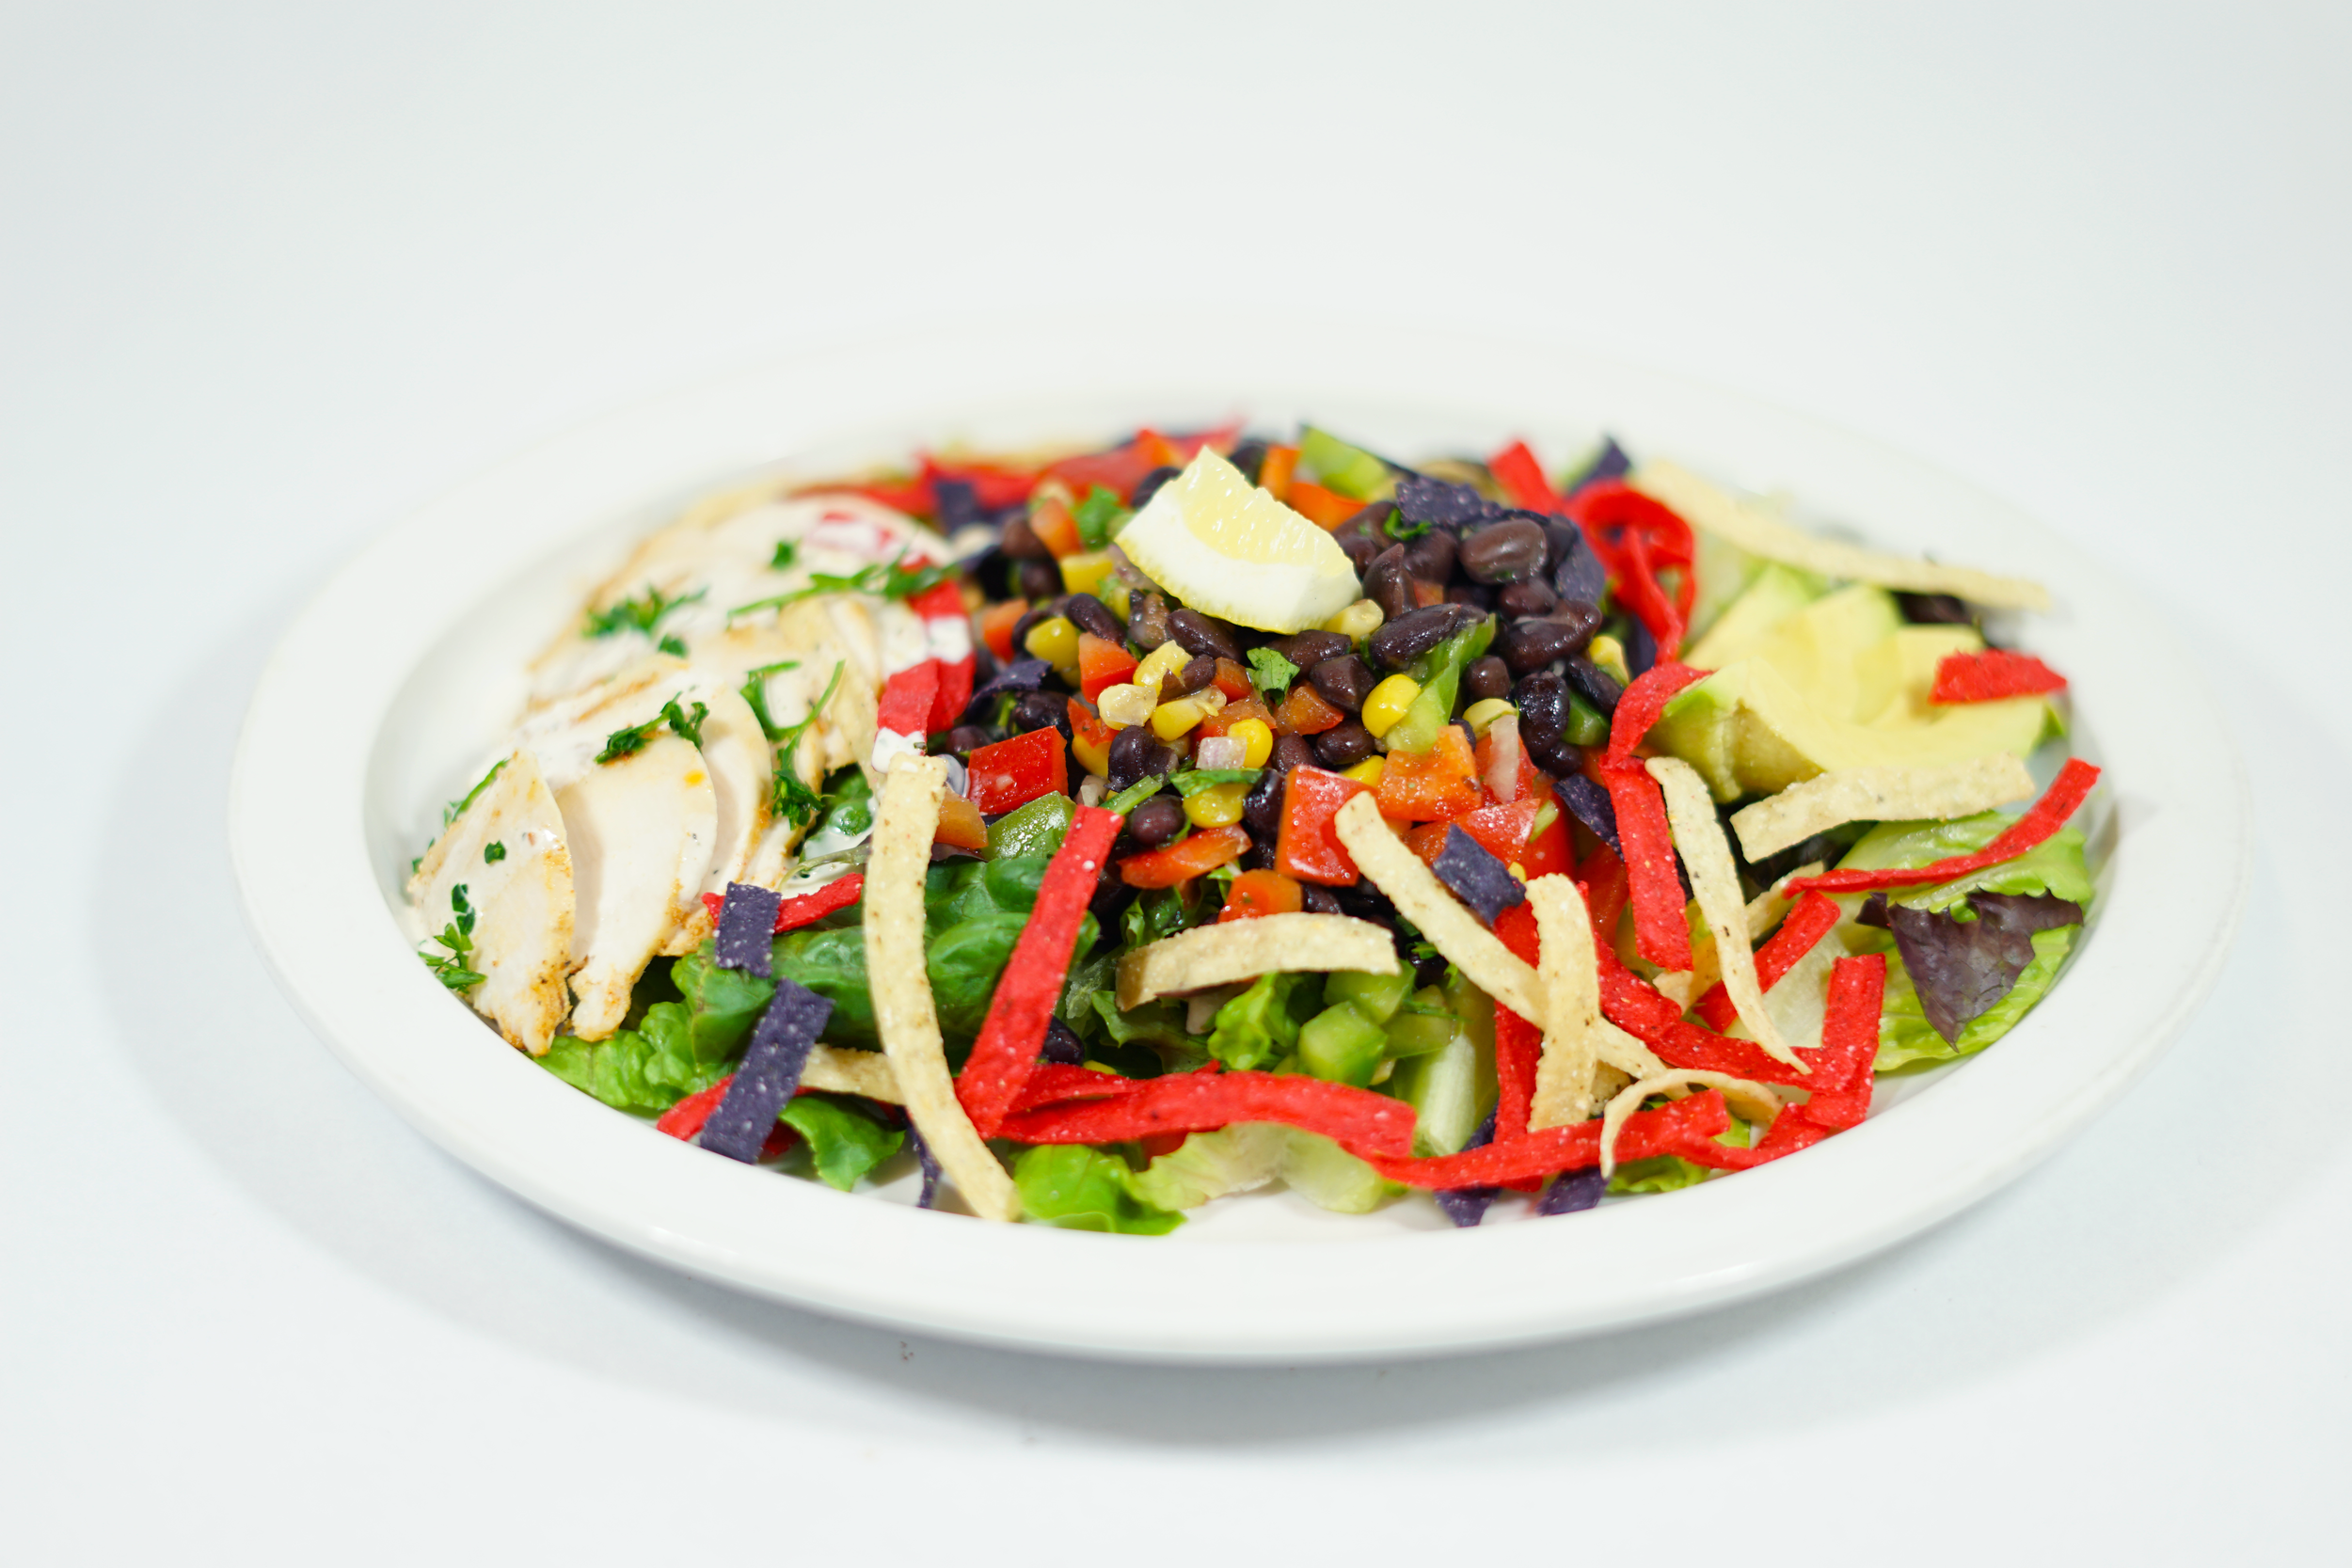 Summer:Southwestern Chipotle Chicken - A black bean, red onion, bell pepper, corn and cilantro mix over a bed of mixed greens with sliced chicken breasts, avocado, and tri color tortilla chips. Served with homemade chipotle ranch dressing.